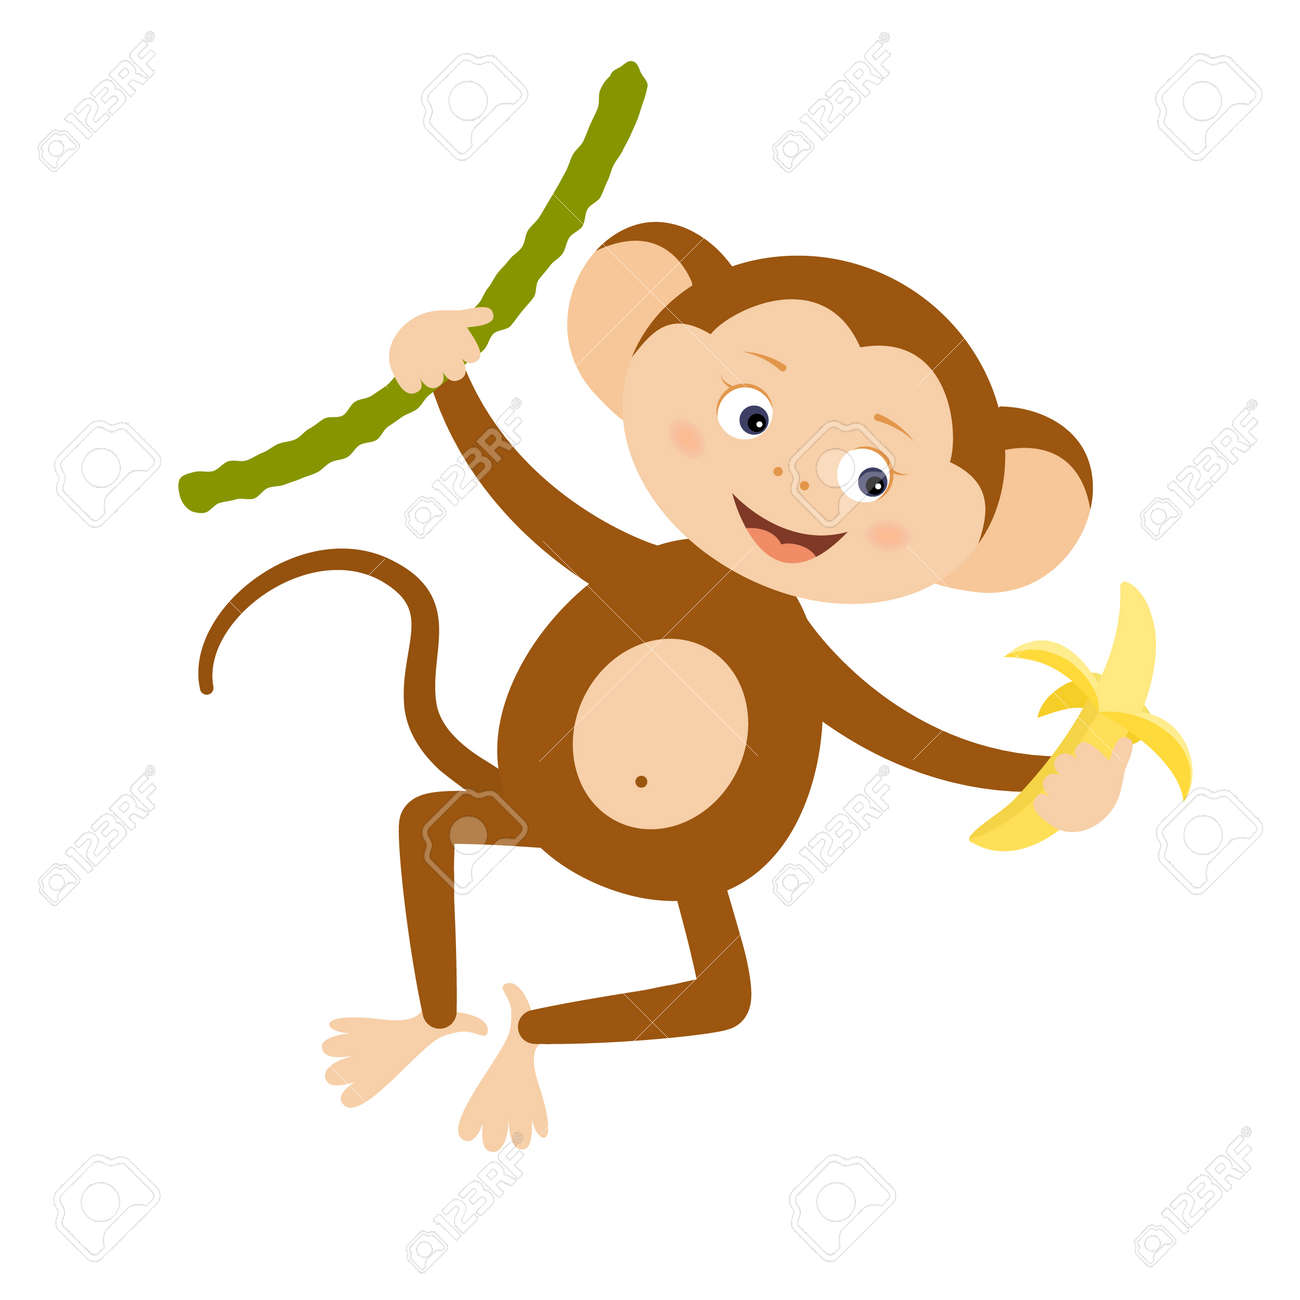 Funny Monkey With Banana Design Element For Baby Shower Card